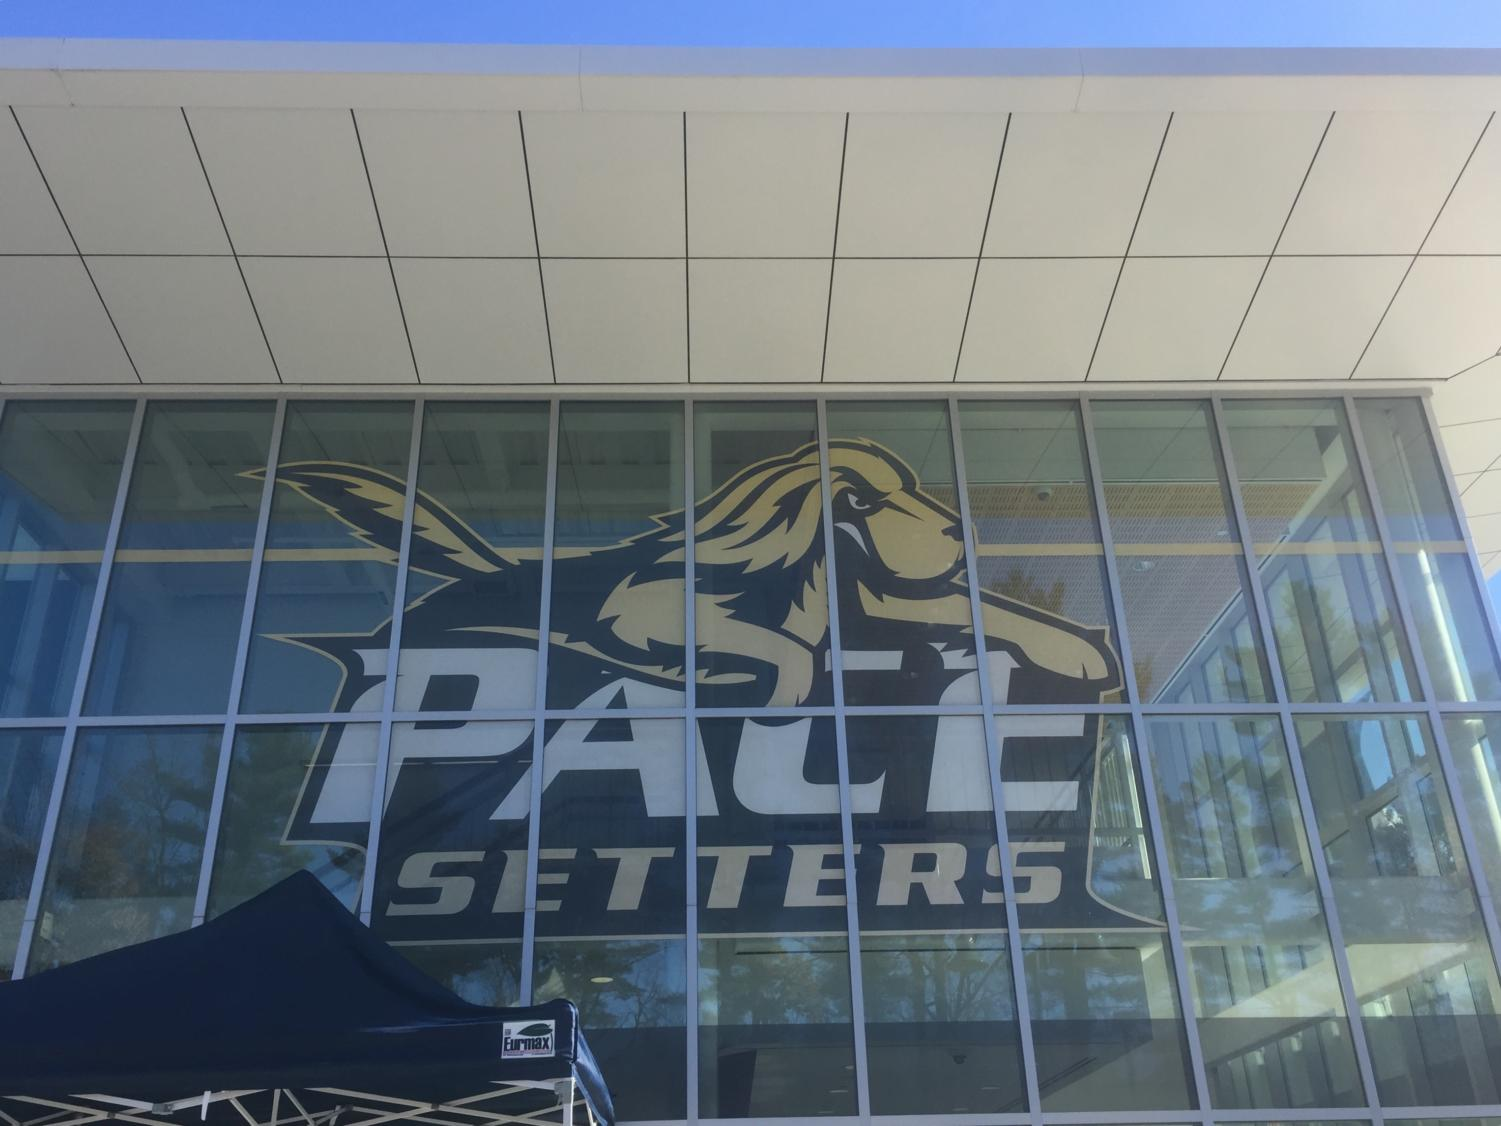 The Ianniello Athletic Field House had it's grand opening in July 2016. Changes to Pace logos is one thing to look for during the rebranding process.